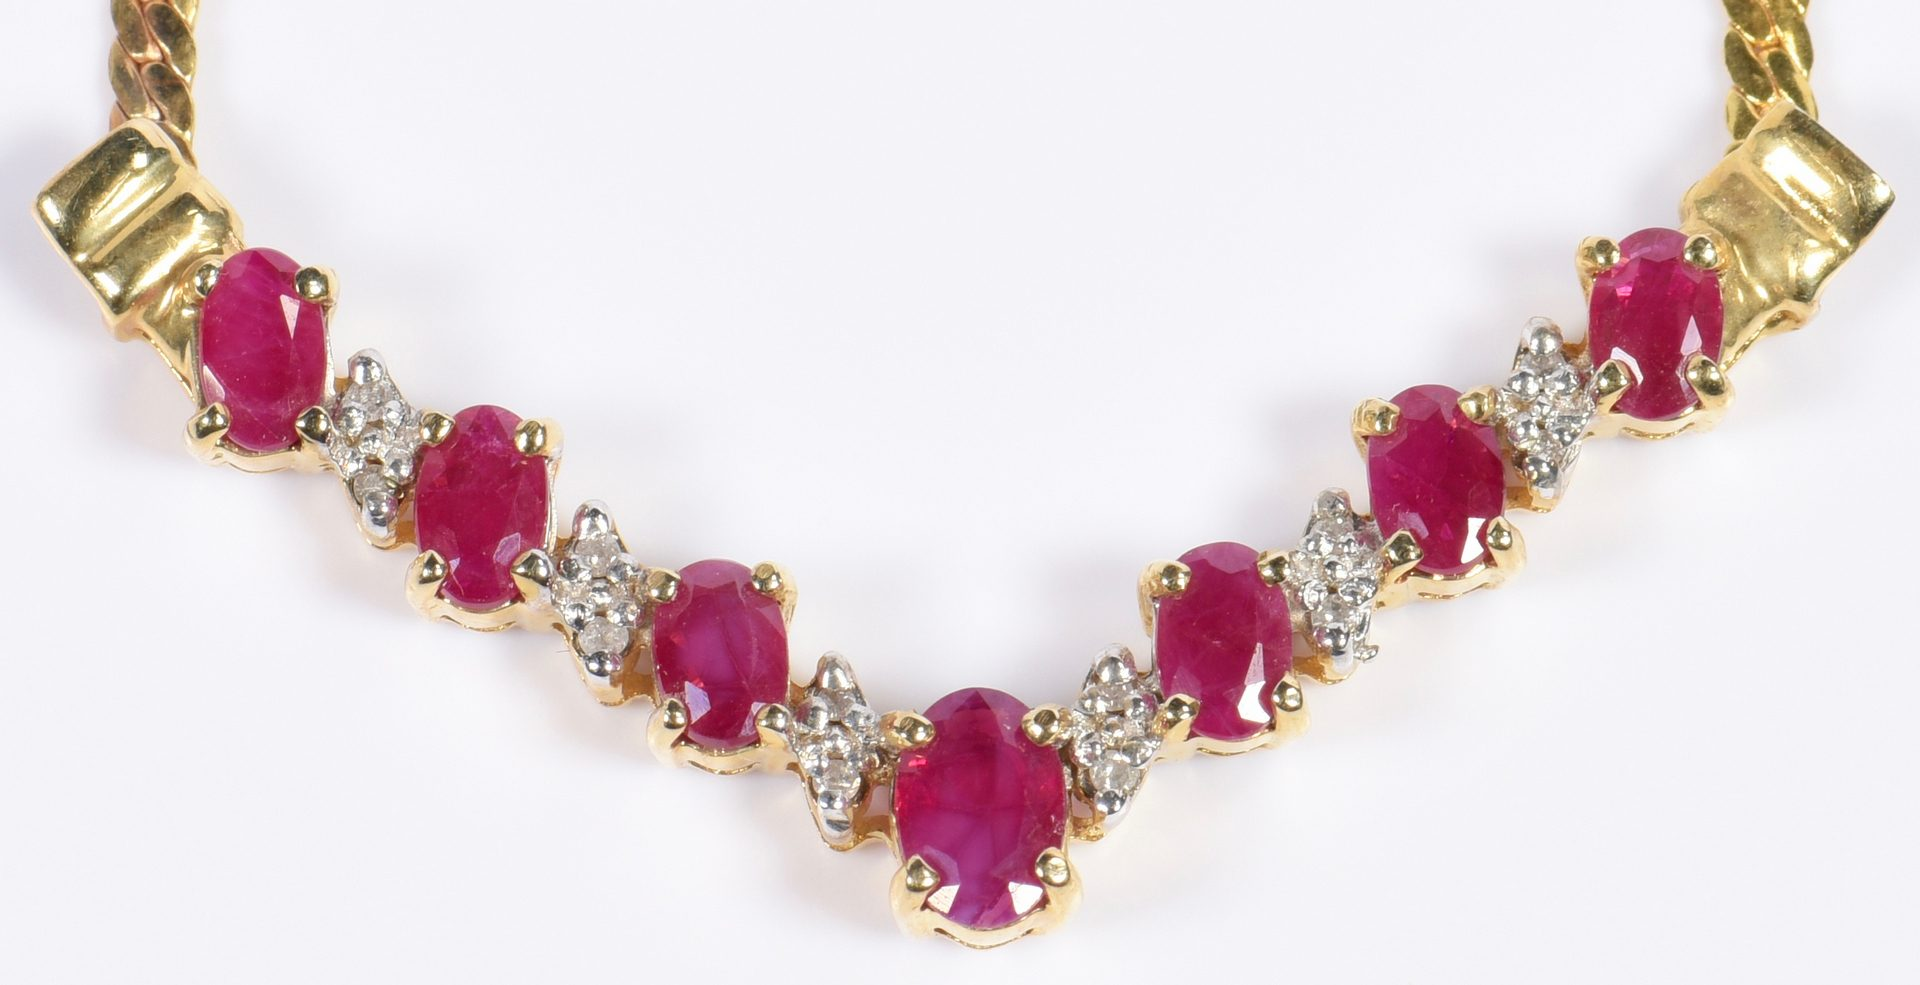 Lot 974: 4 pcs Gold and Ruby Jewelry